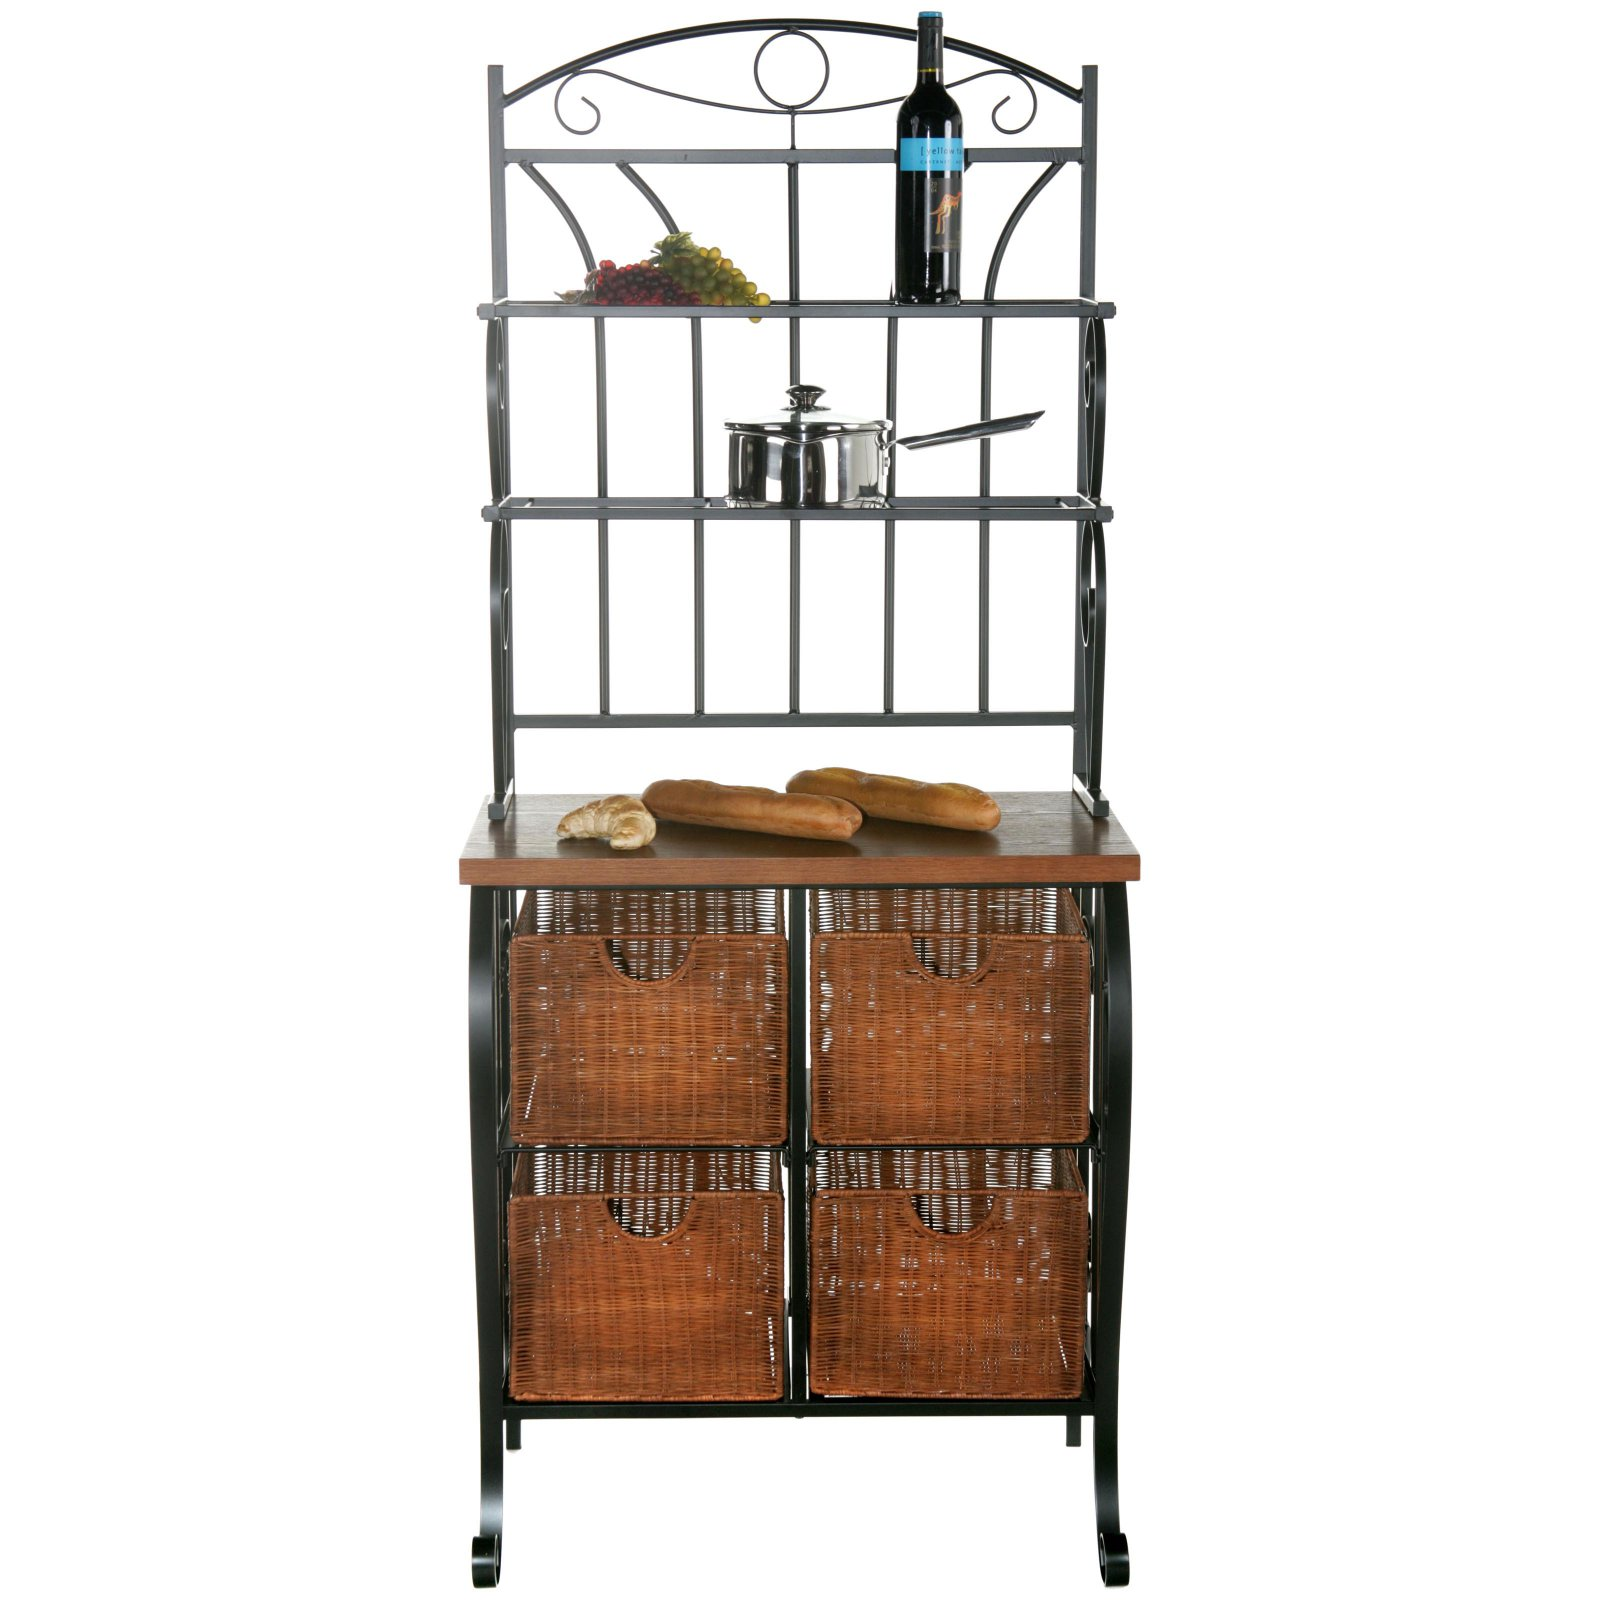 Iron/Wicker Baker'S Rack